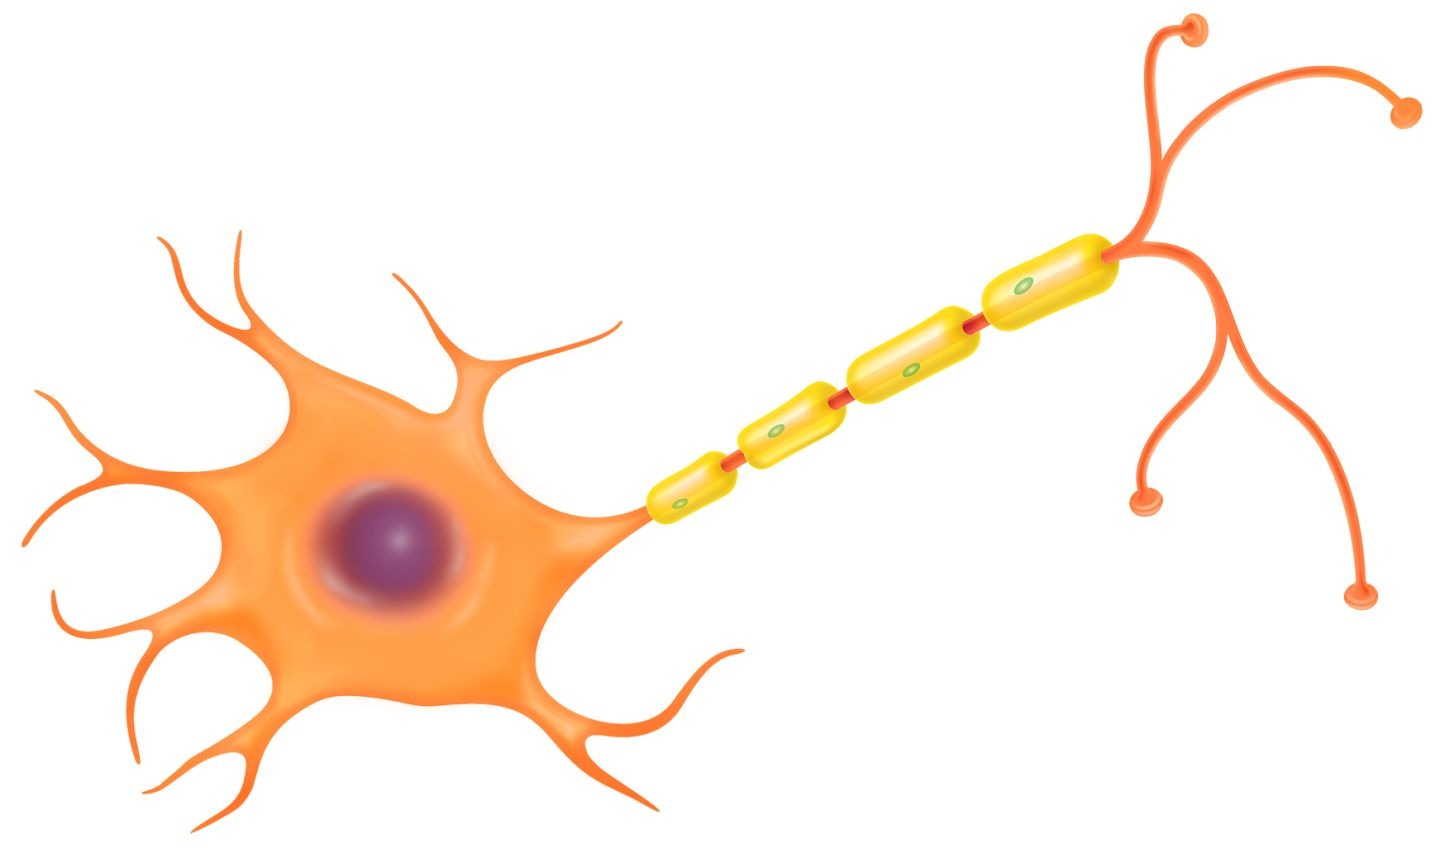 Nerve cell clipart.